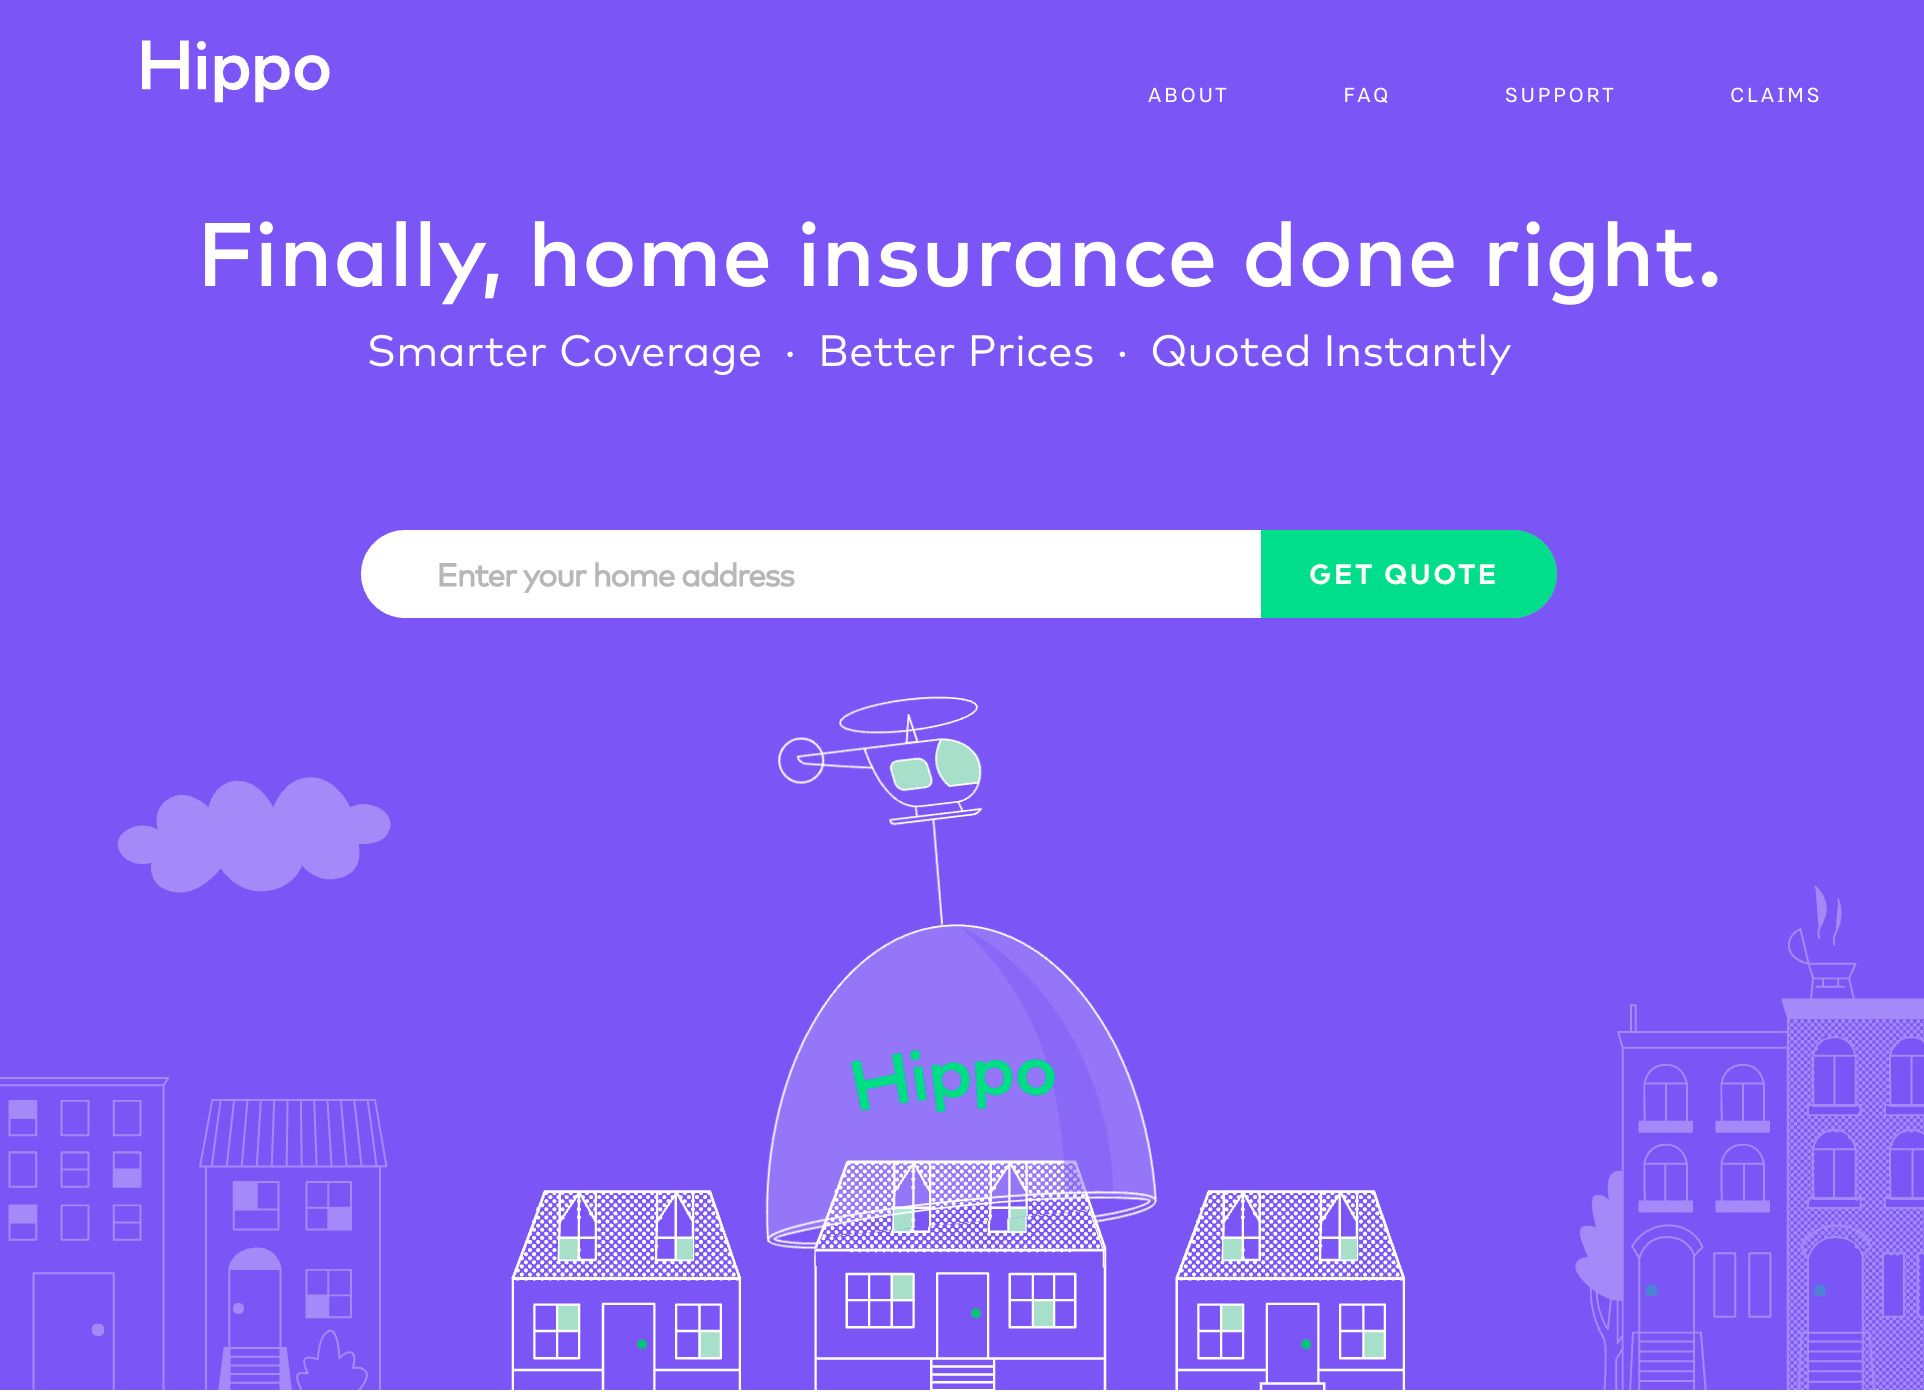 Hippo provides comprehensive homeowners insurance at